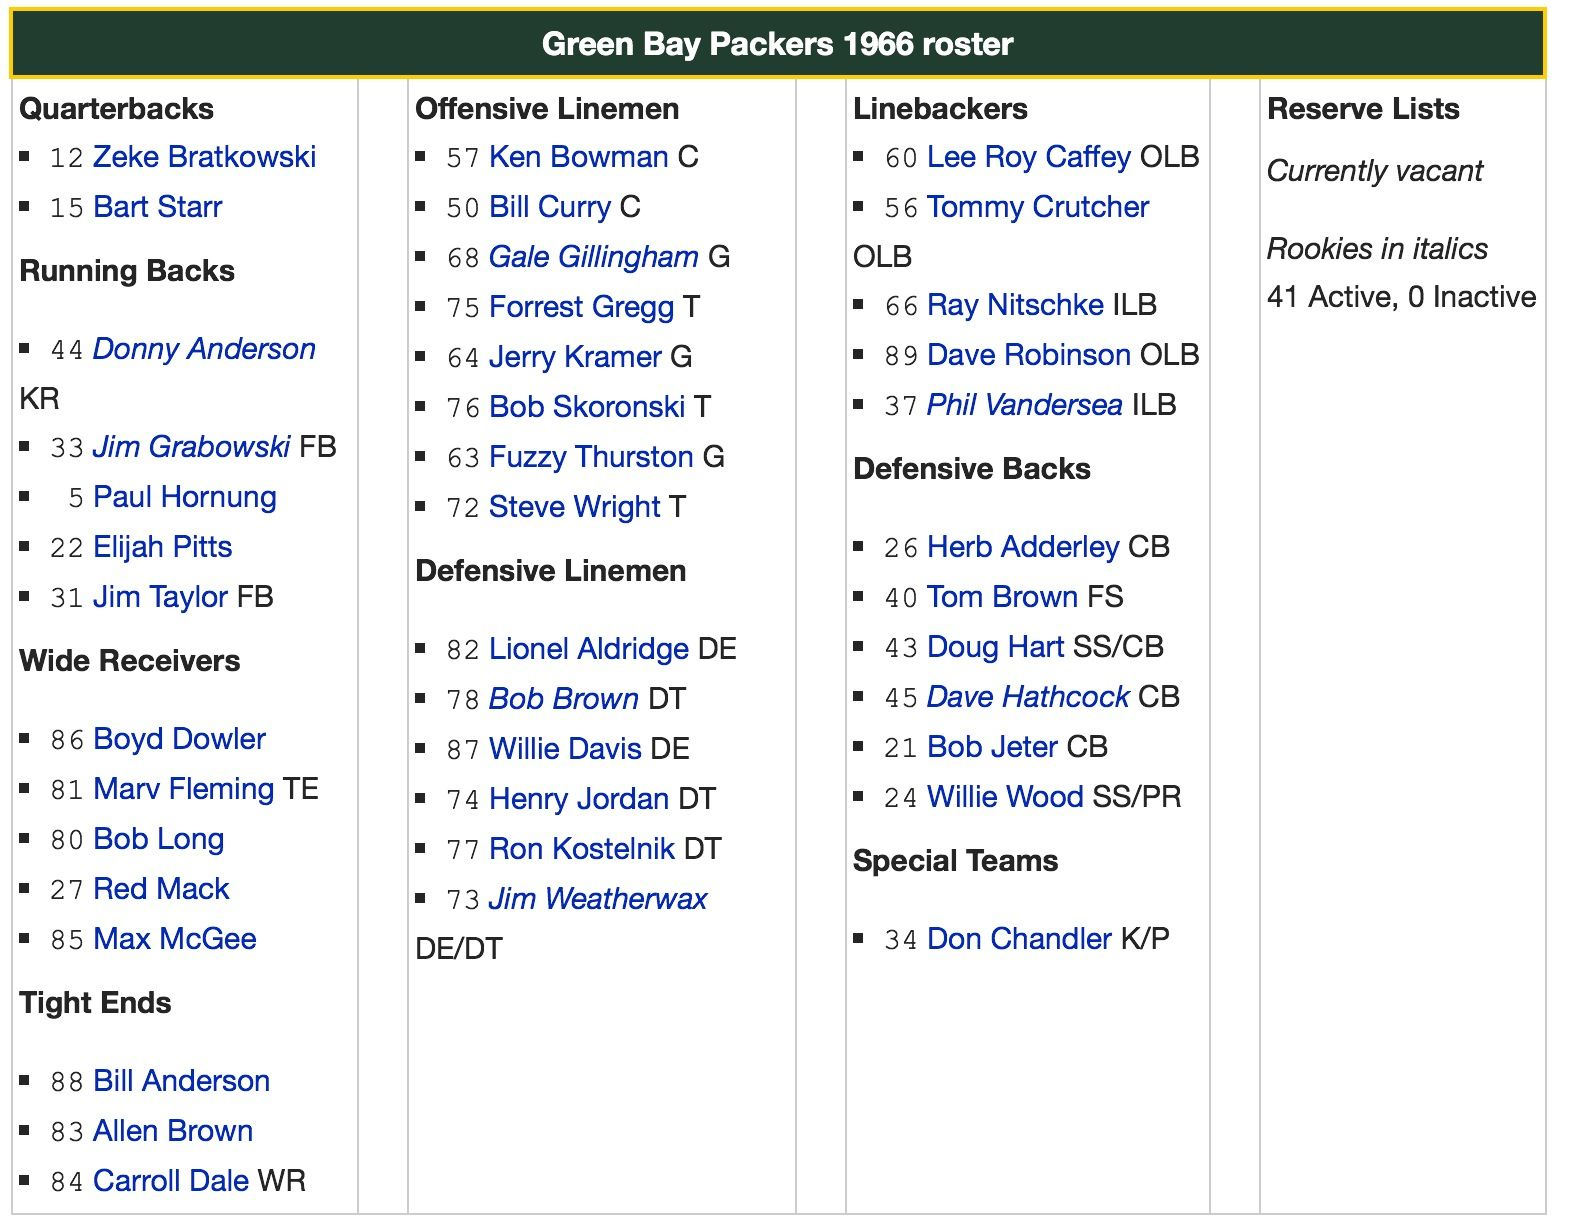 Green Bay Packers 1966 Roster Green Bay Packers Green Bay Packers